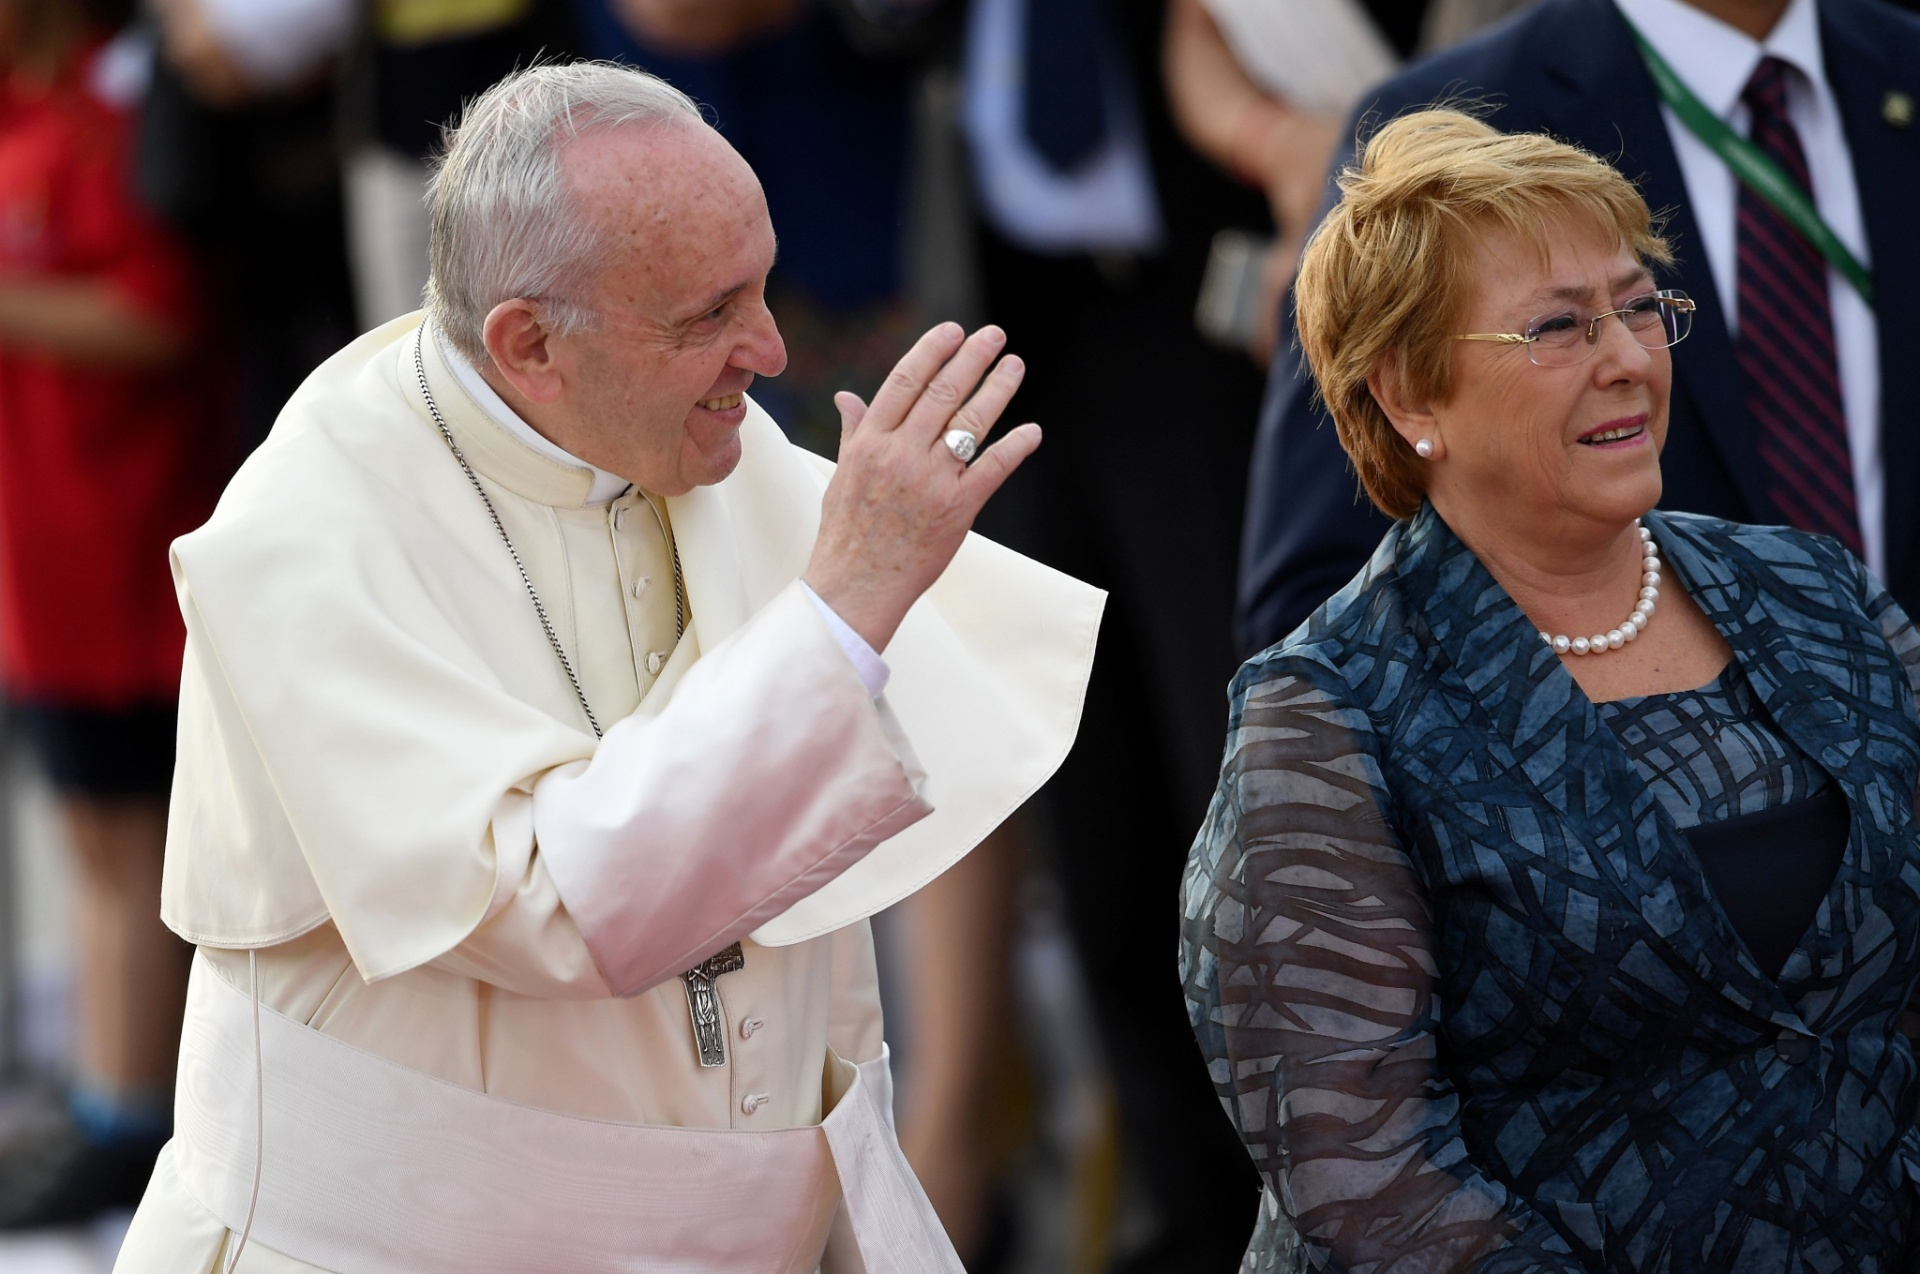 A presidente do Chile, Michelle Bachelet, recebe o papa Francisco